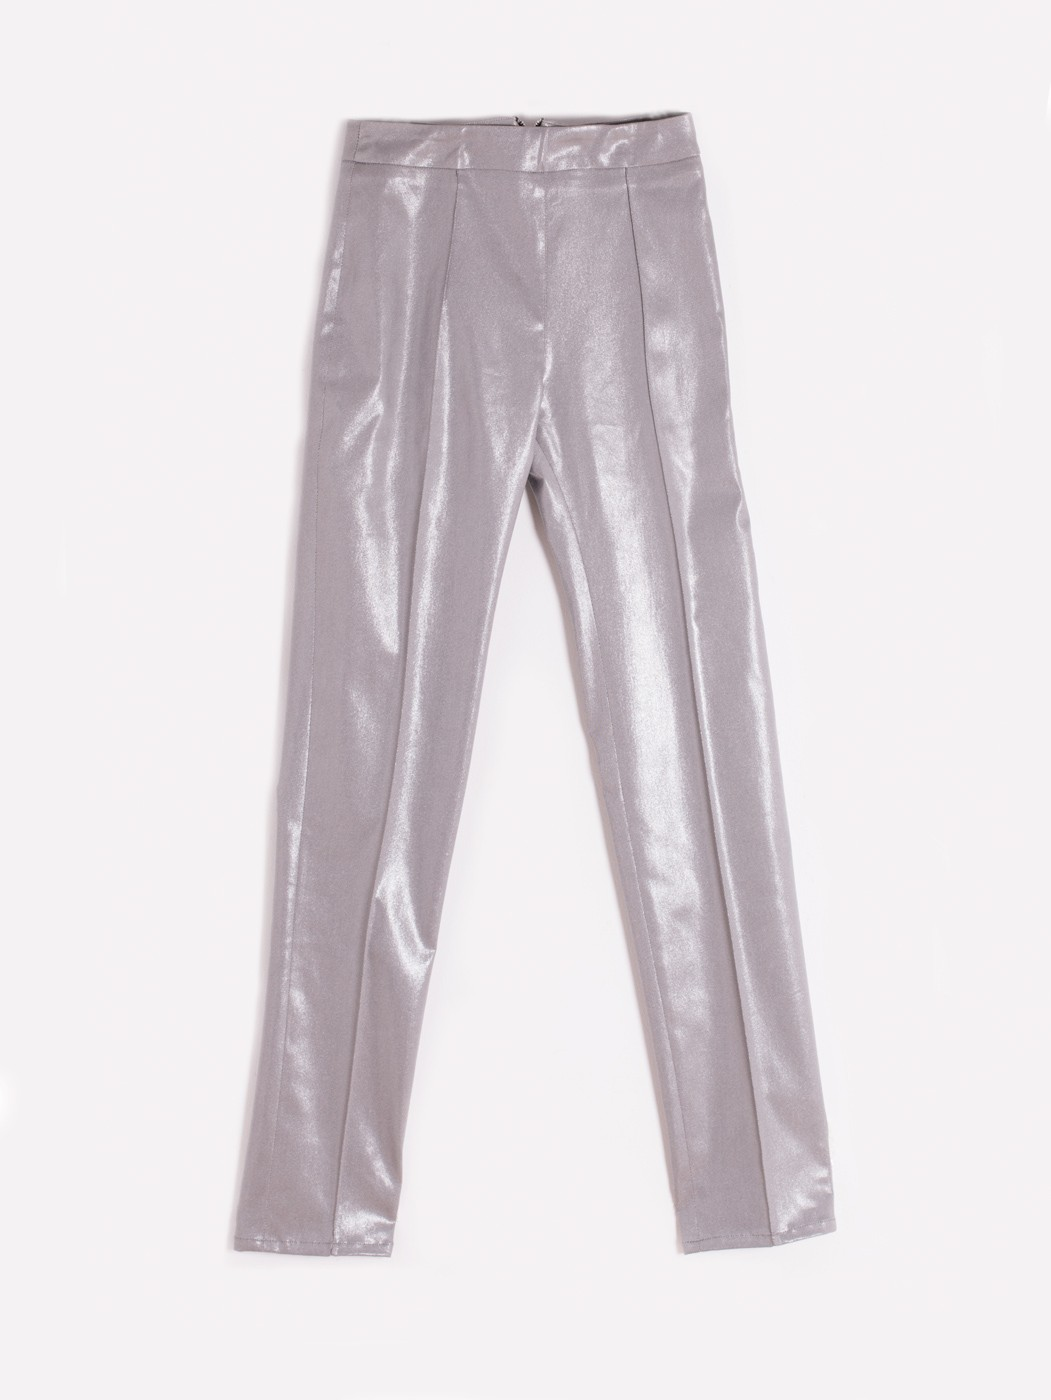 KERIA SILVER TROUSERS